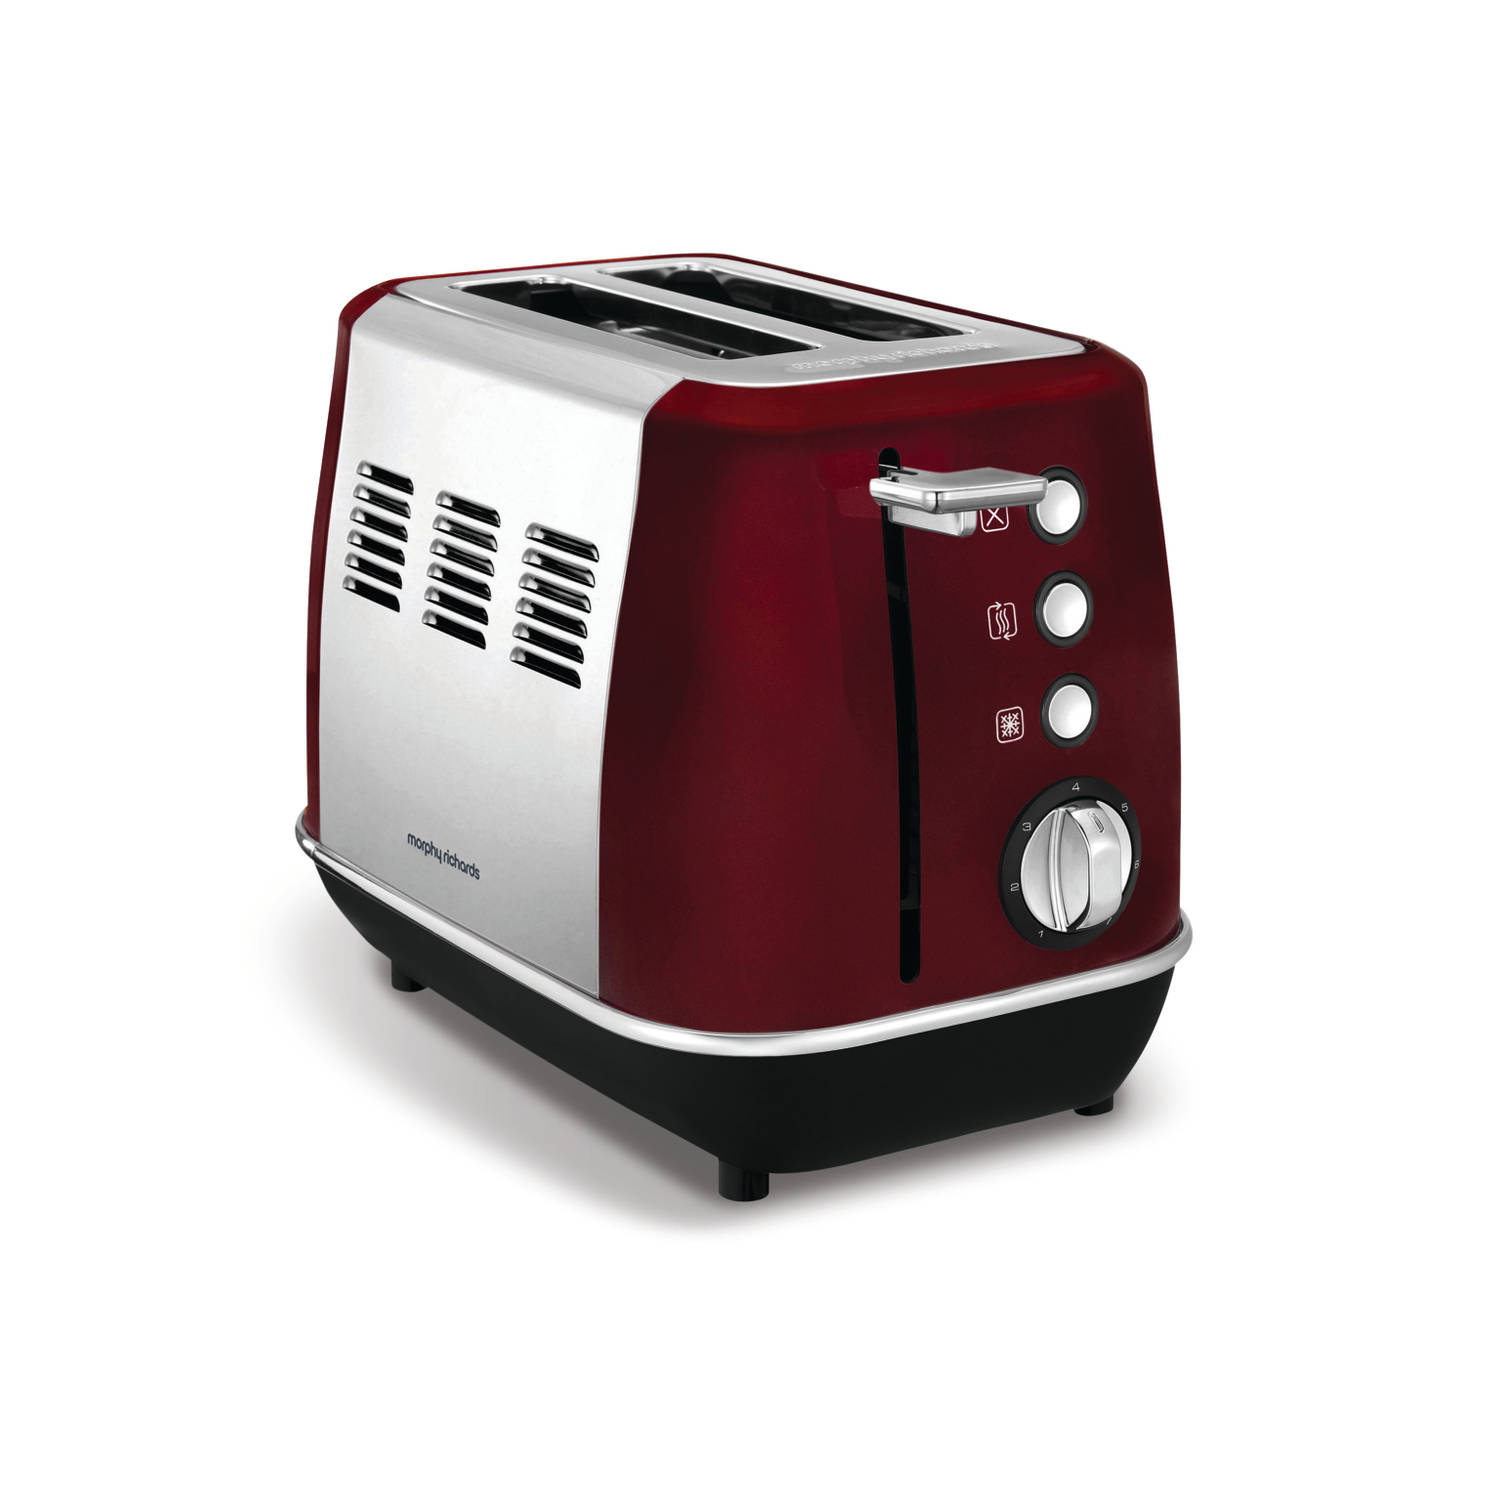 Morphy Richards broodrooster Evoke - rood